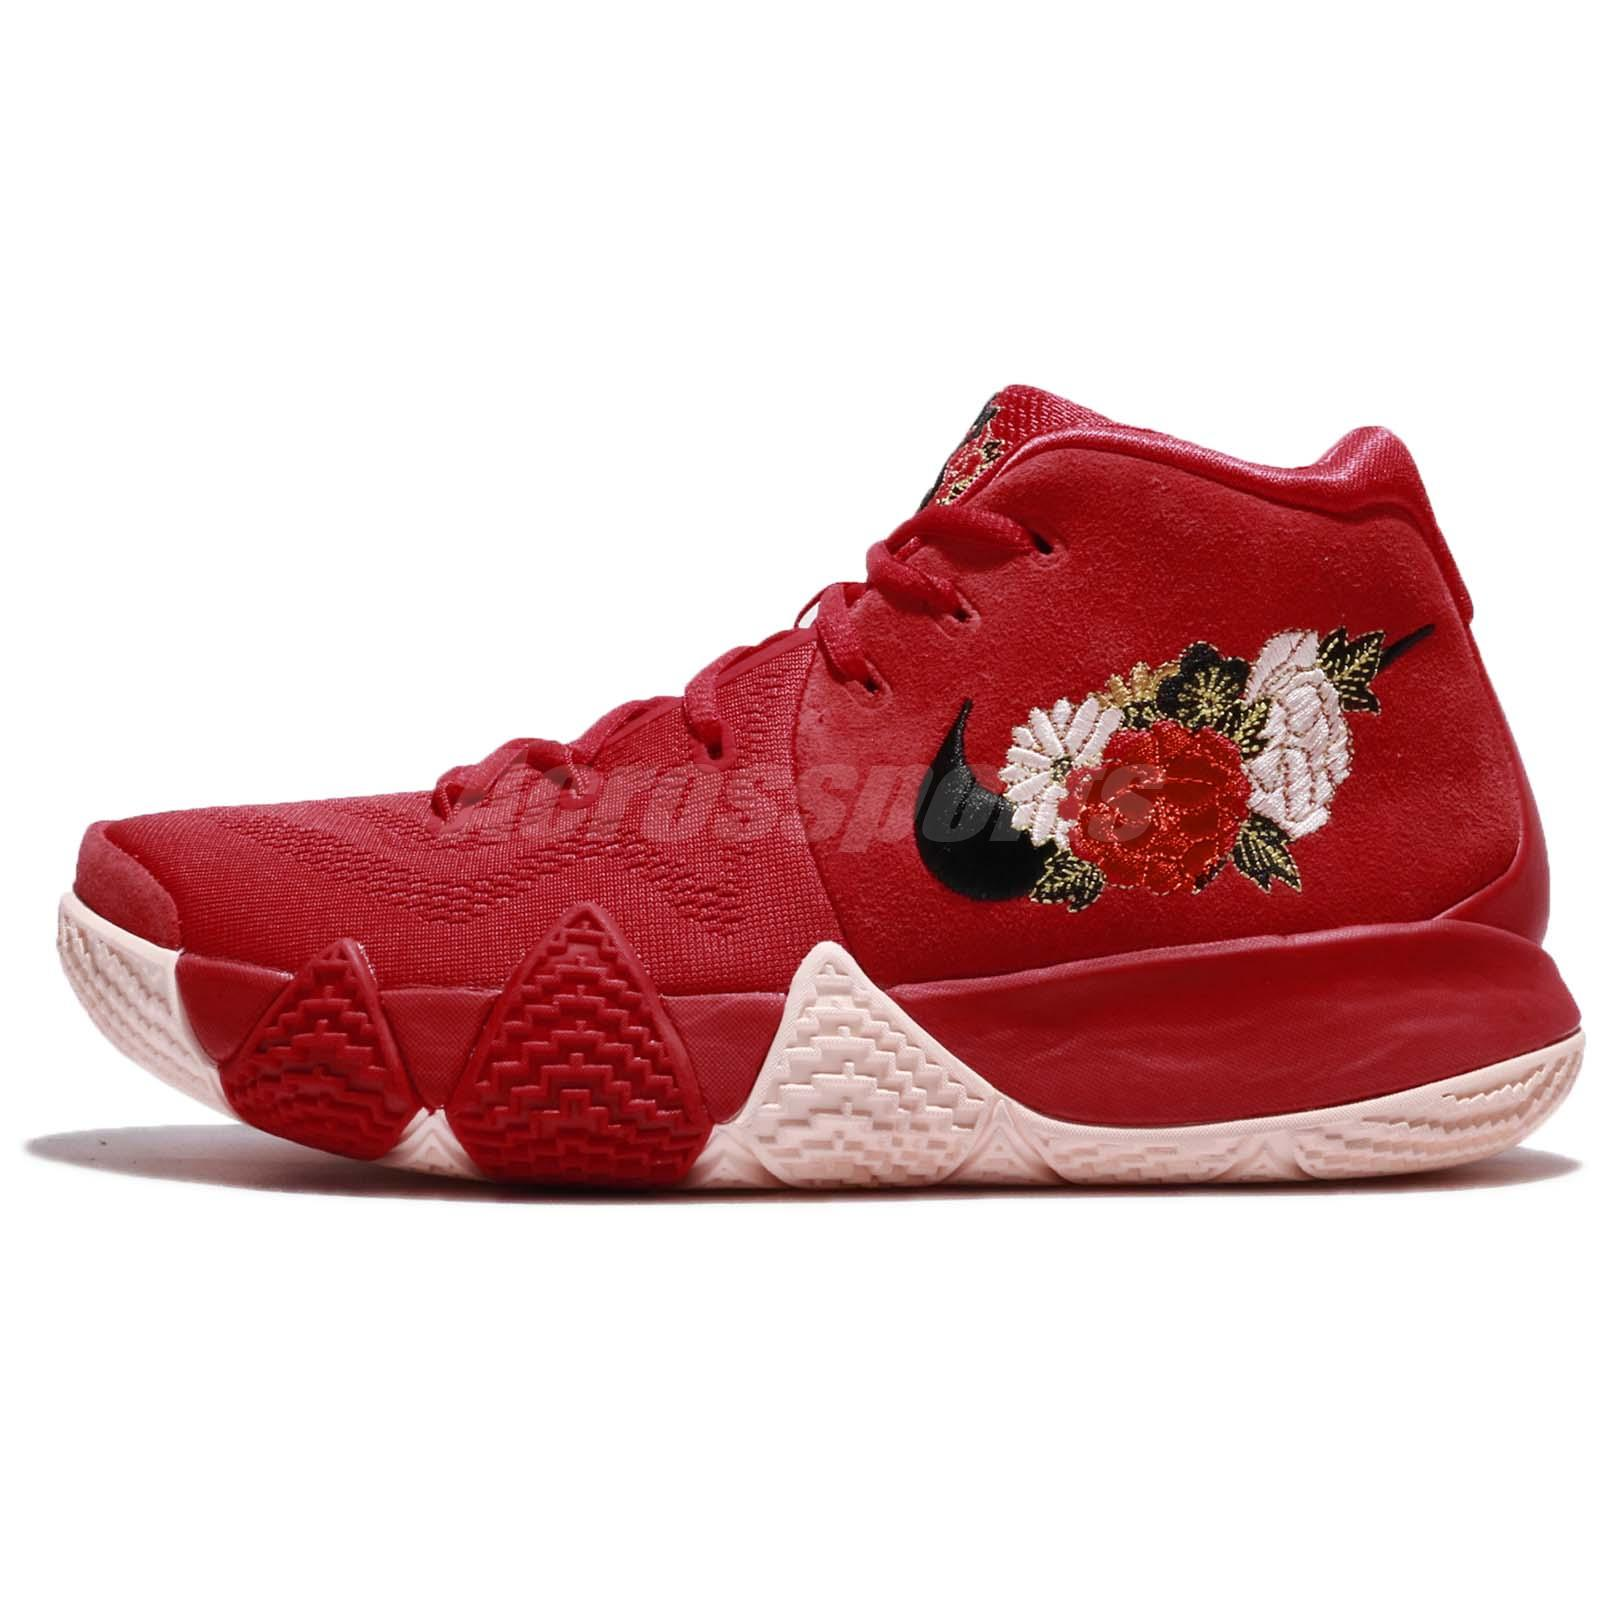 san francisco 3d5eb 71a04 Nike Kyrie 4 EP CNY IV Chinese New Year Flowers Irving Men Basketball  943807-600